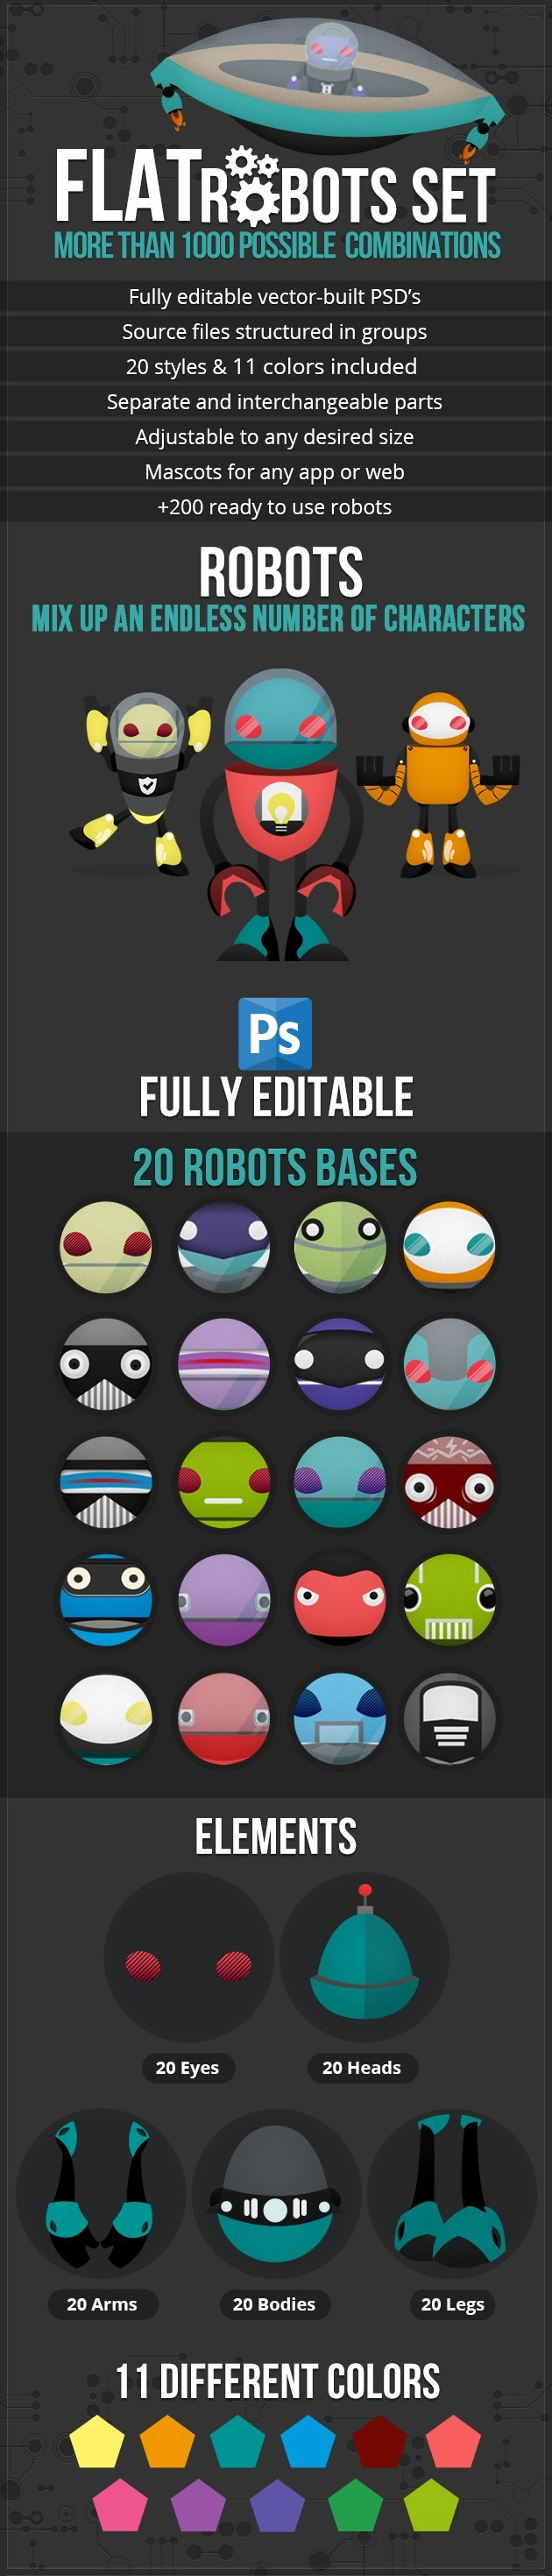 Robot vector pack: 1000 free robot characters !